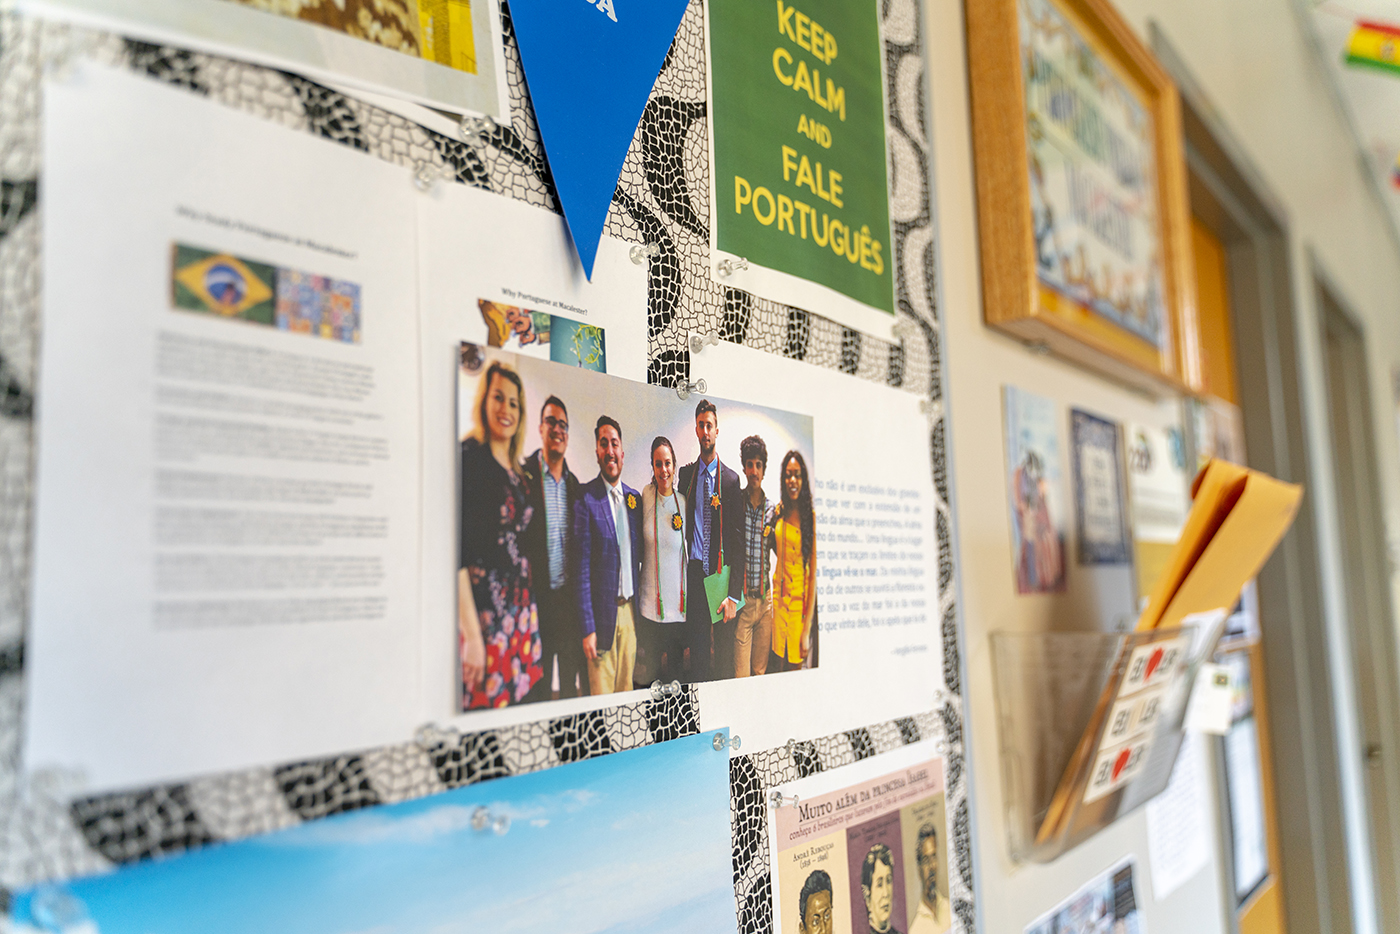 The wall outside the Portuguese program office. Photo by Owen Pearlman '23.